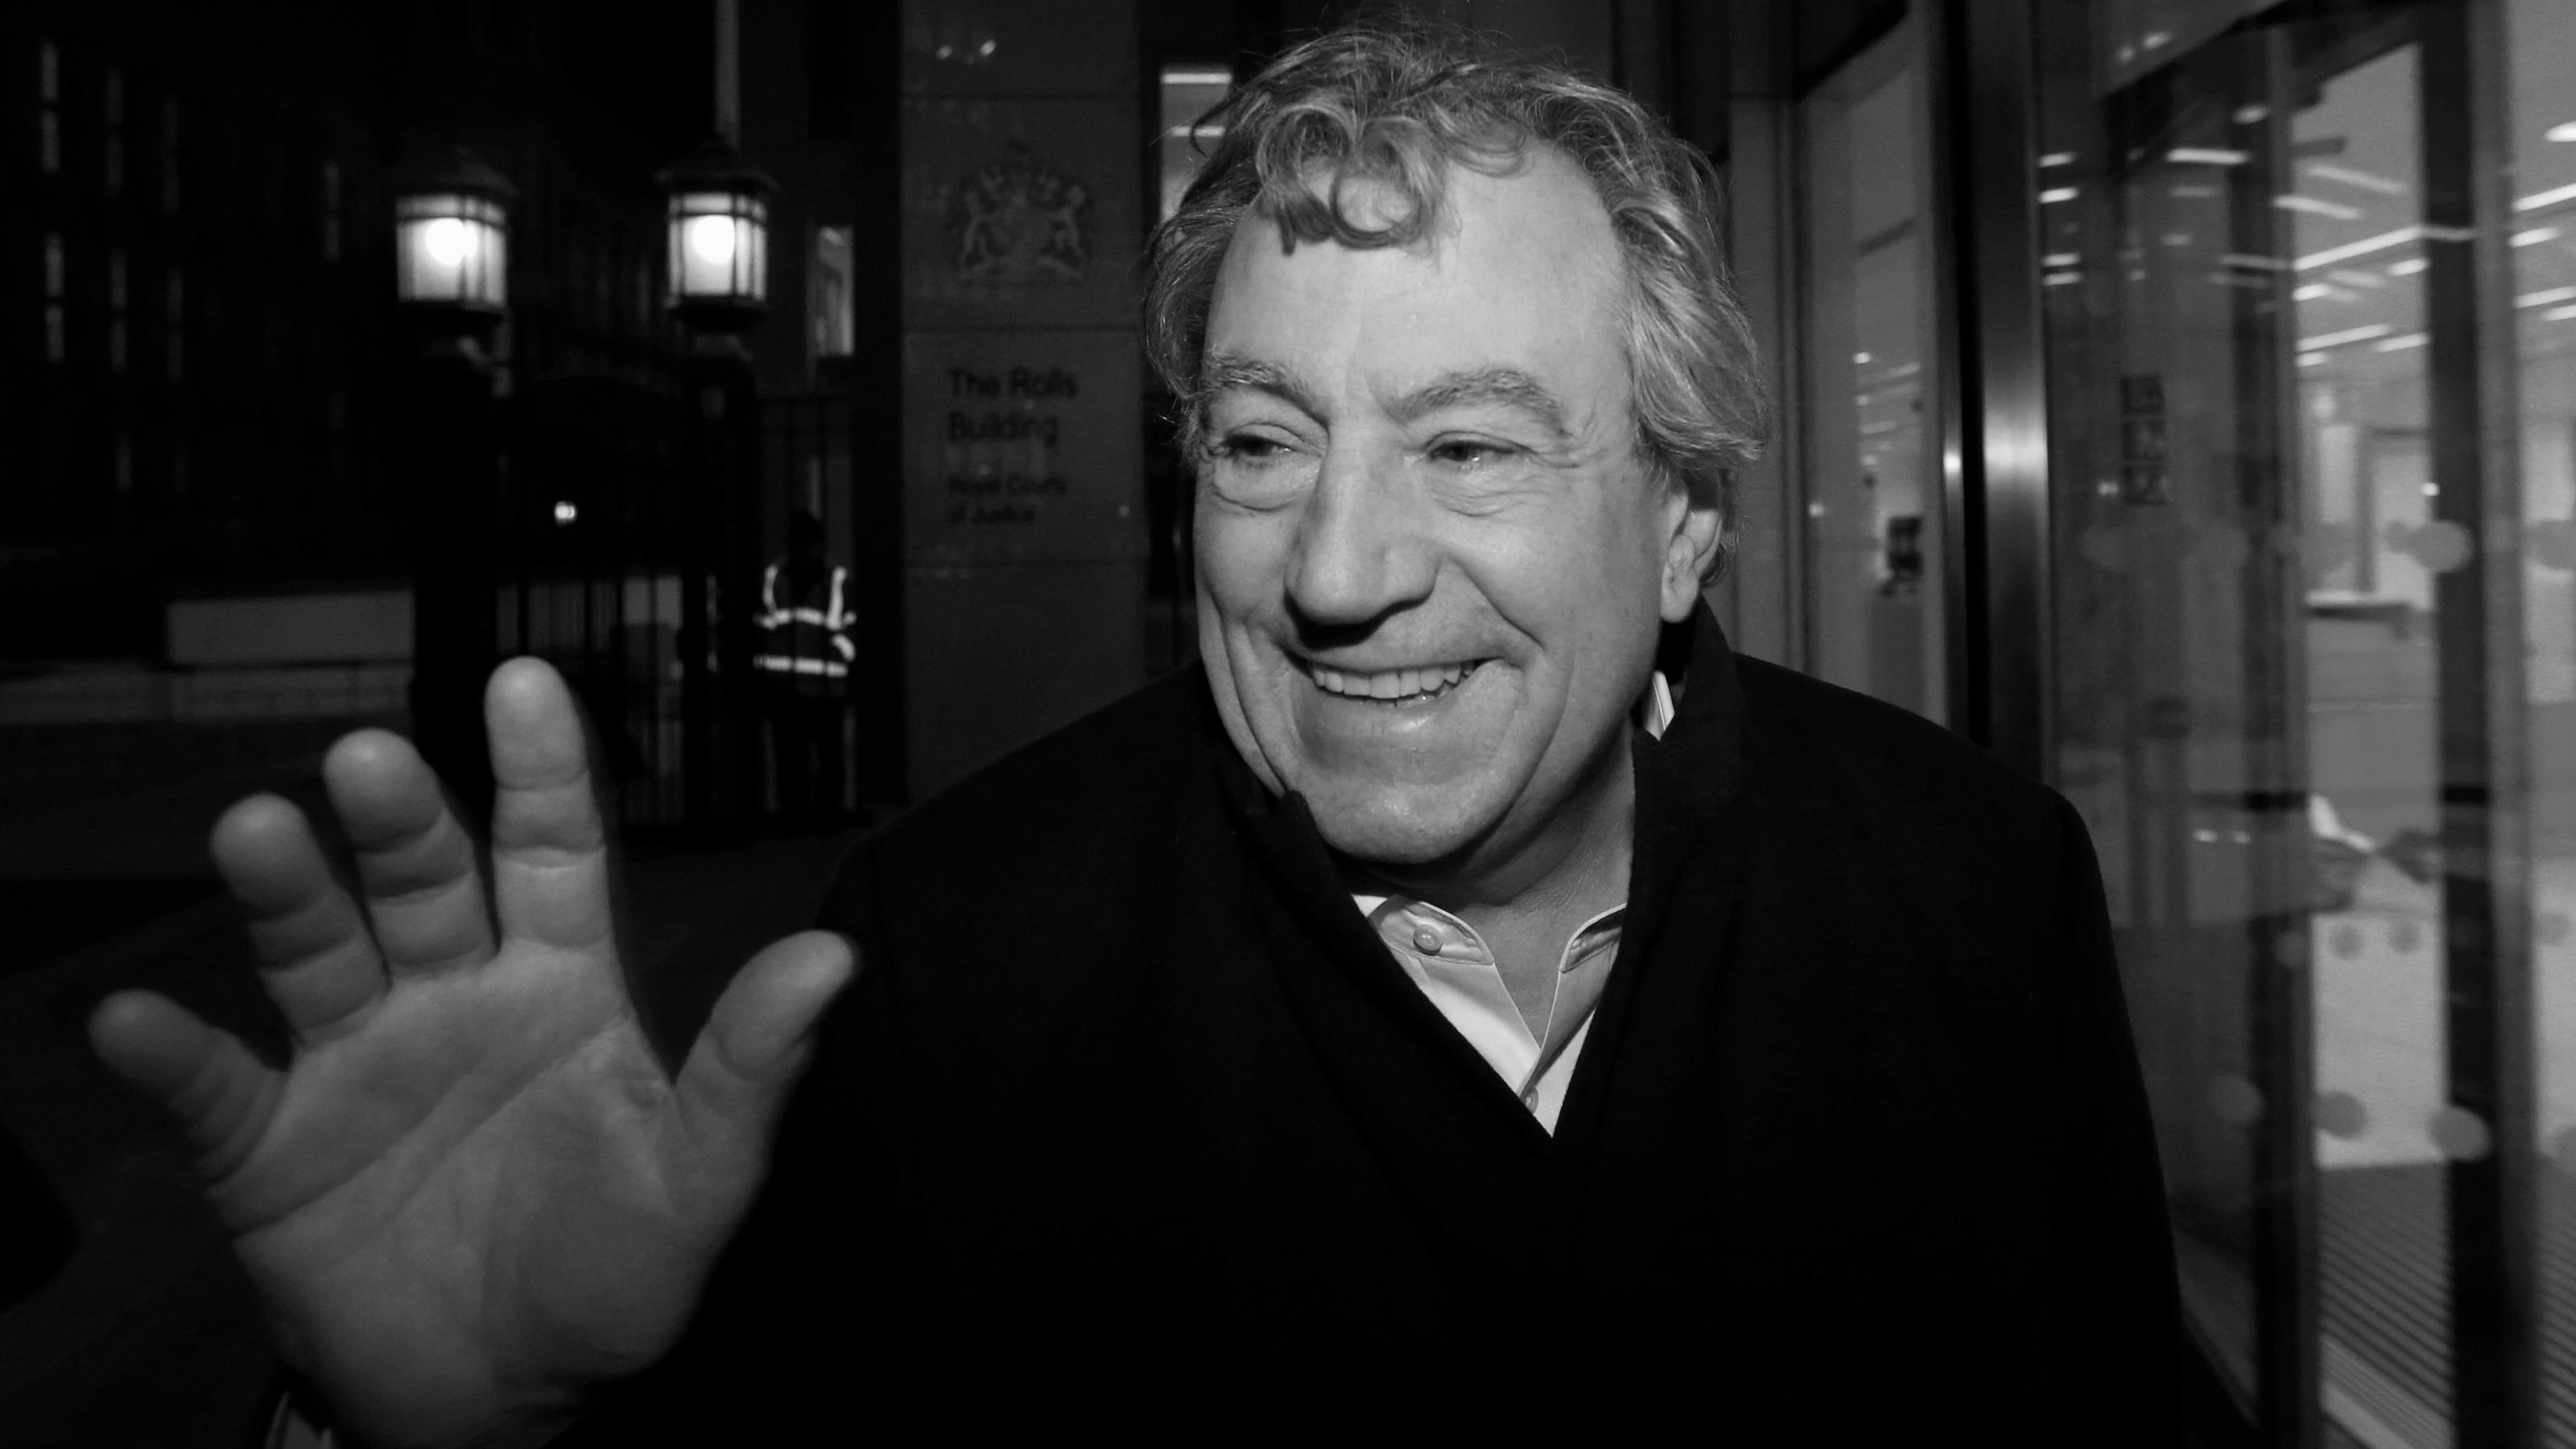 FILE PHOTO: British comedian Terry Jones smiles as he leaves The Rolls Building in central London November 30, 2012. Three members of the Monty Python British comedy troupe were in court in London on Friday for the opening of a lawsuit over the profi